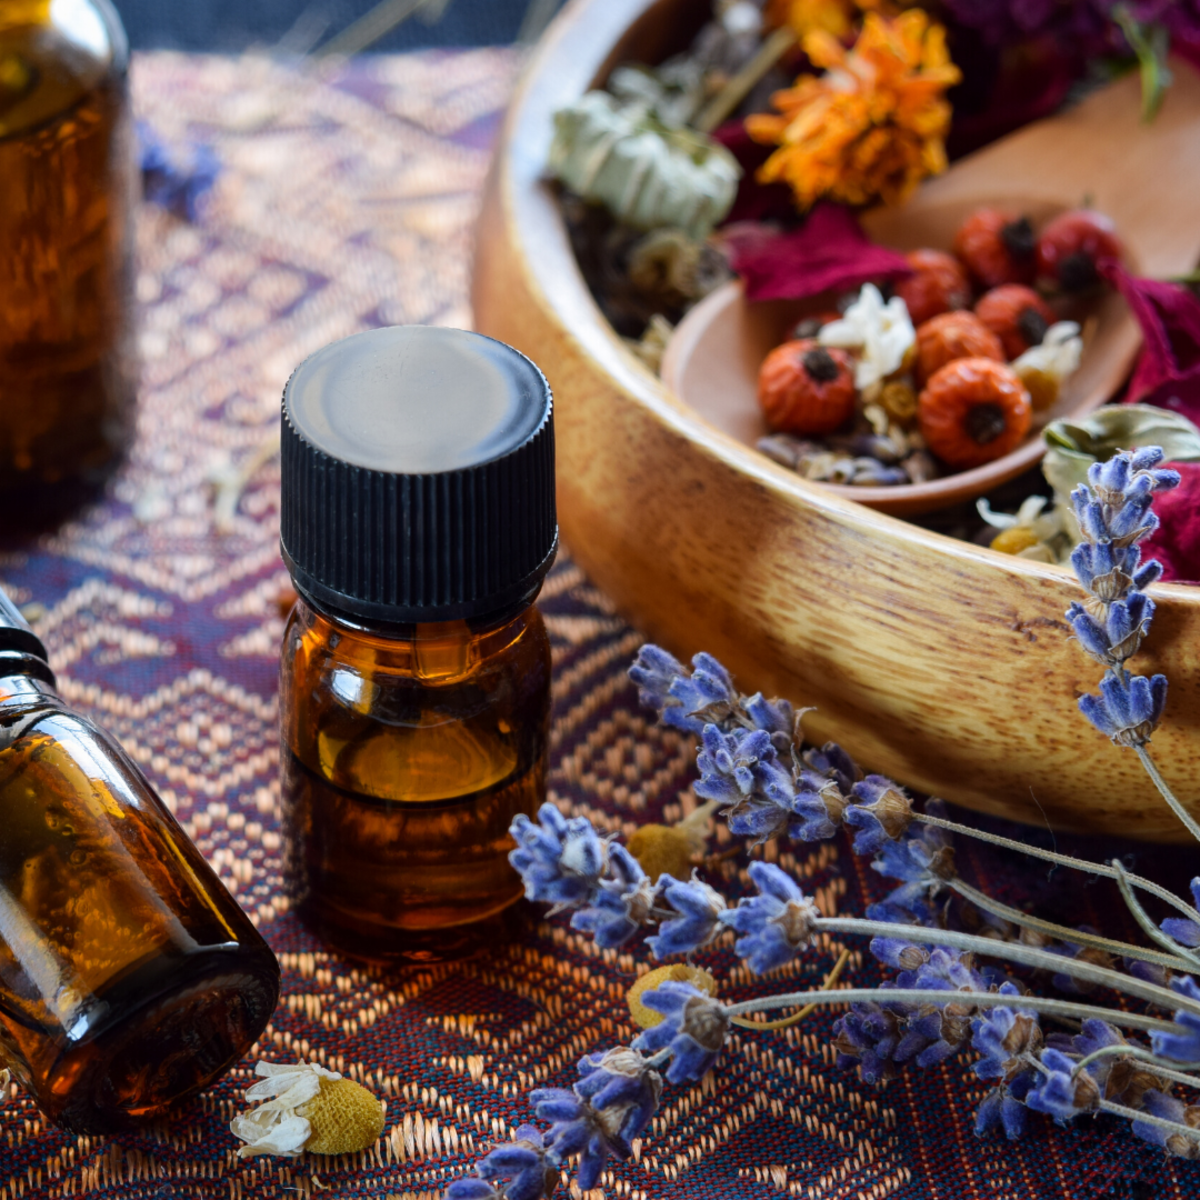 Aromatherapy can help take your mind off your mood.